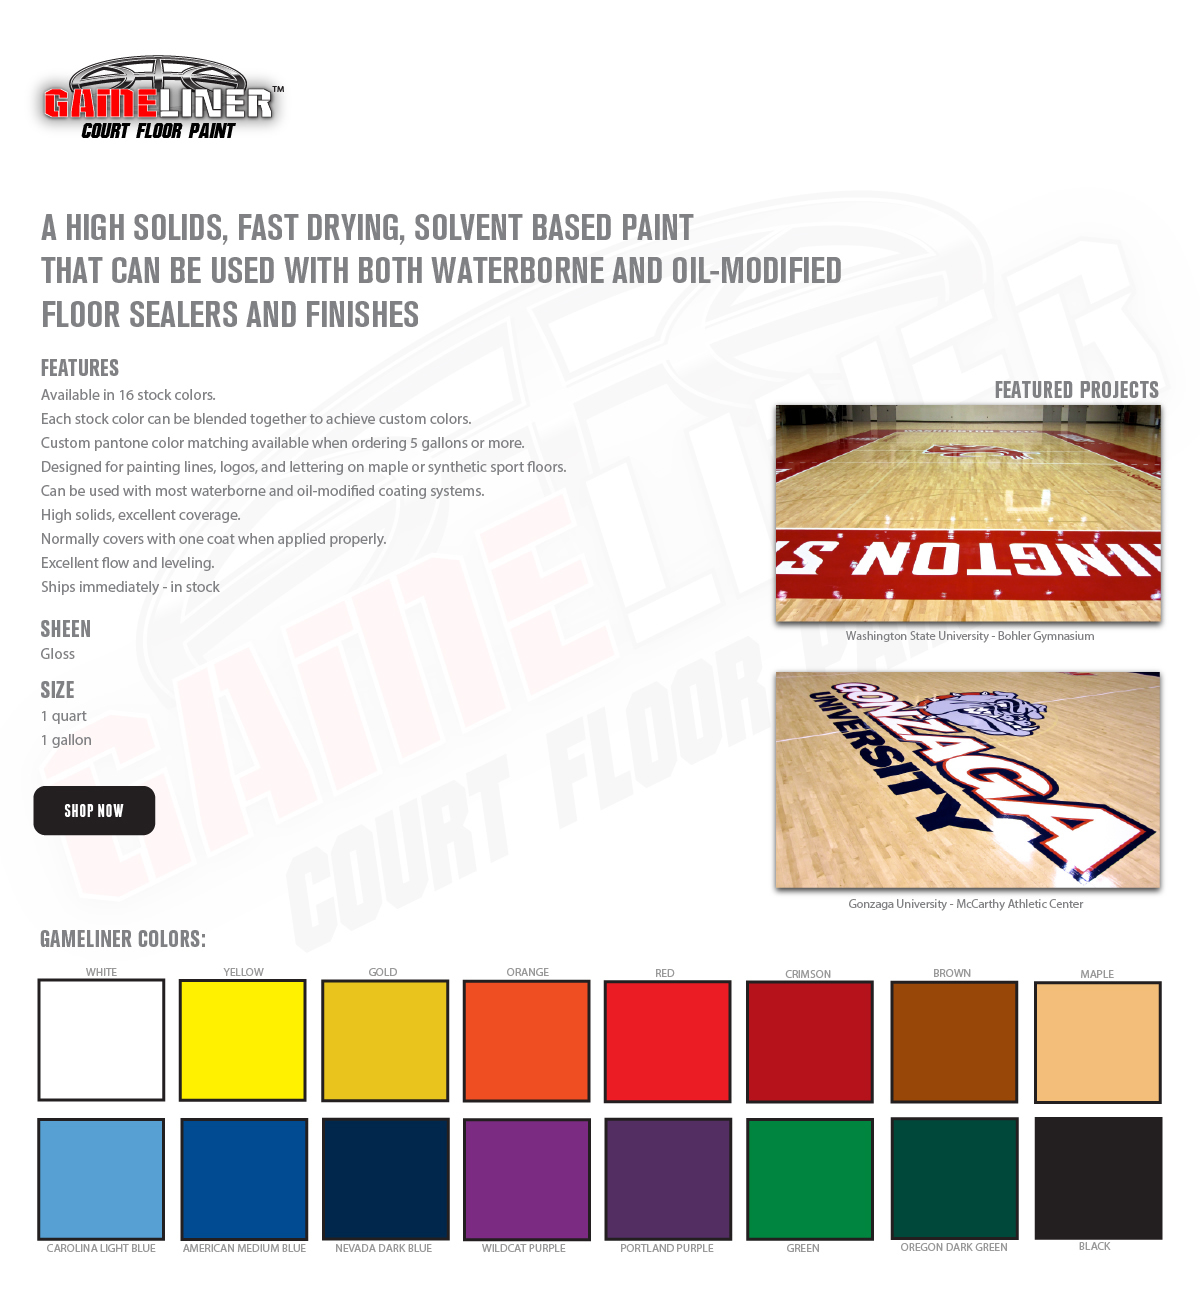 Liner Court Floor Paint